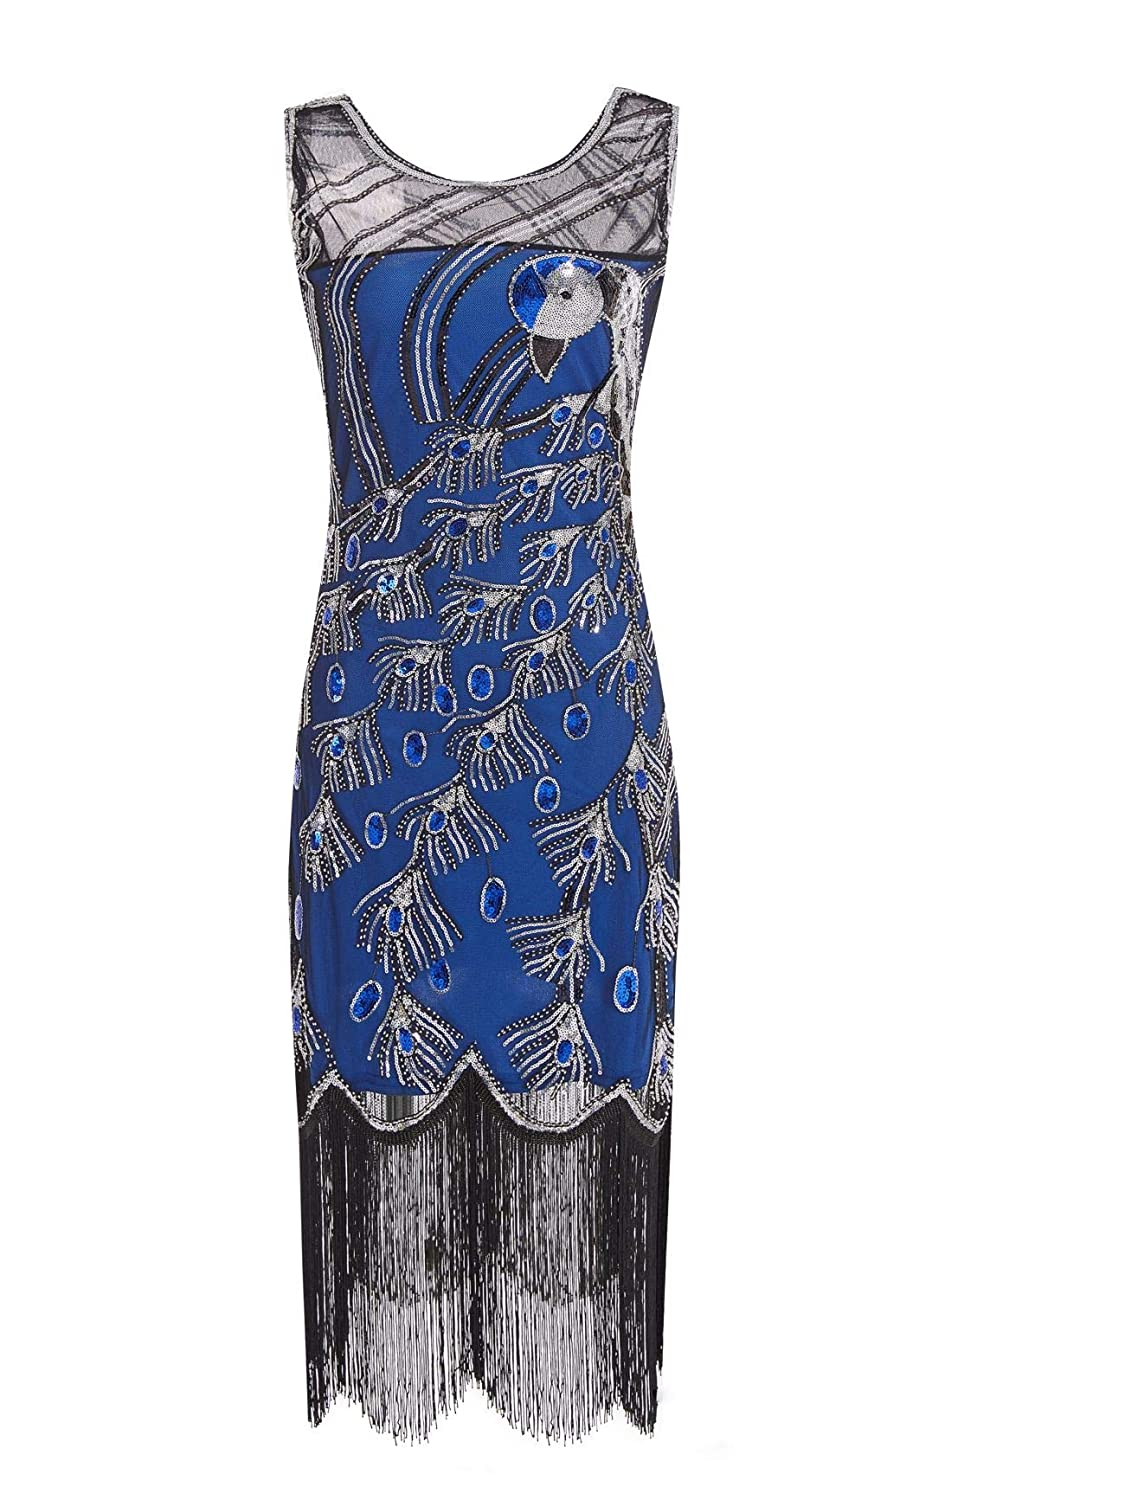 1920s Vintage Peacock Sequin Fringed Party Flapper Dress w 20s Accessories Set